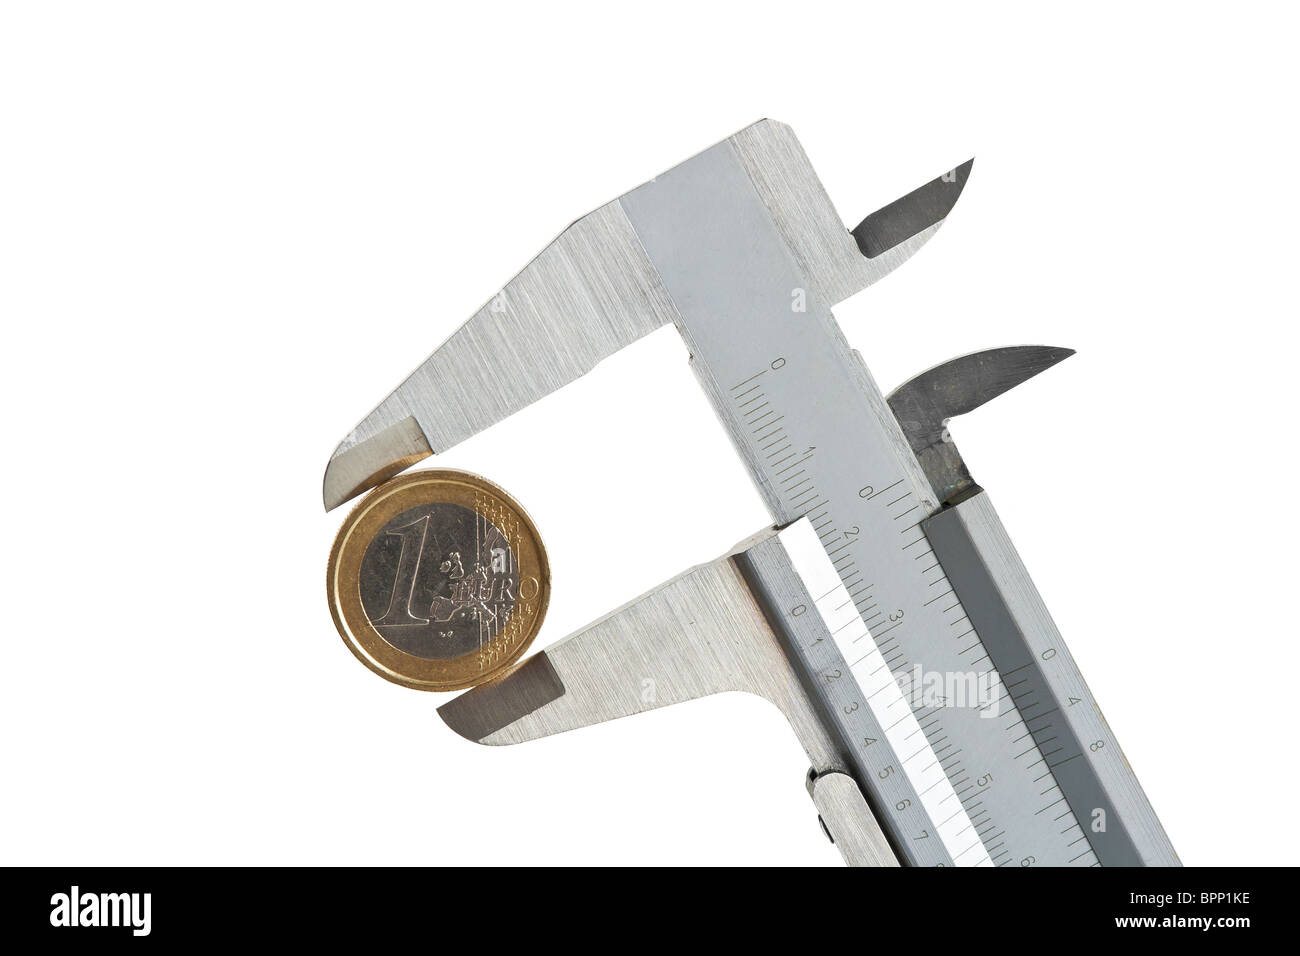 caliper with one euro coin isolated on white background with clipping path - Stock Image